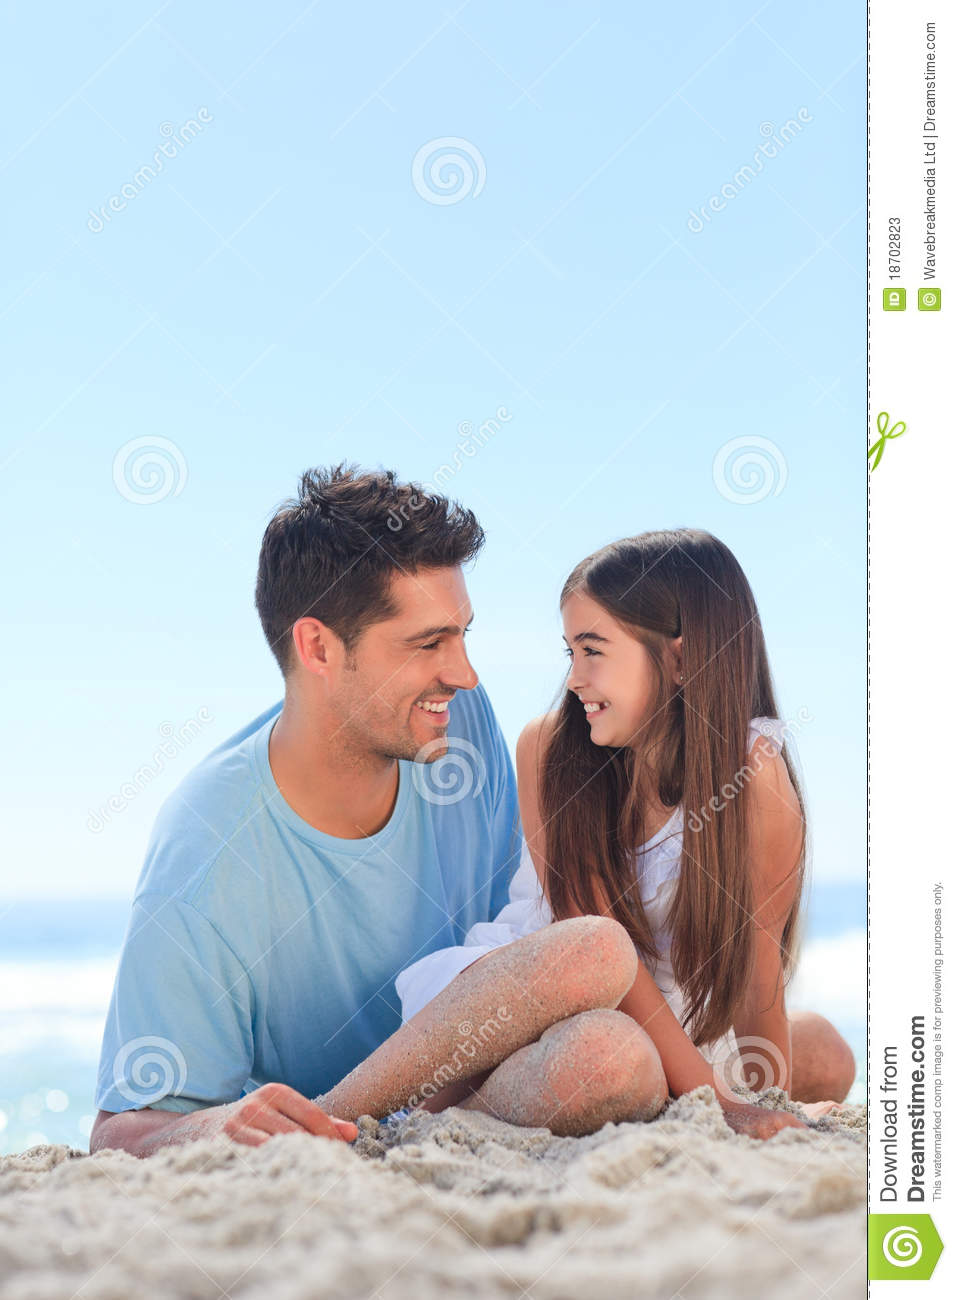 beach daughter father nude